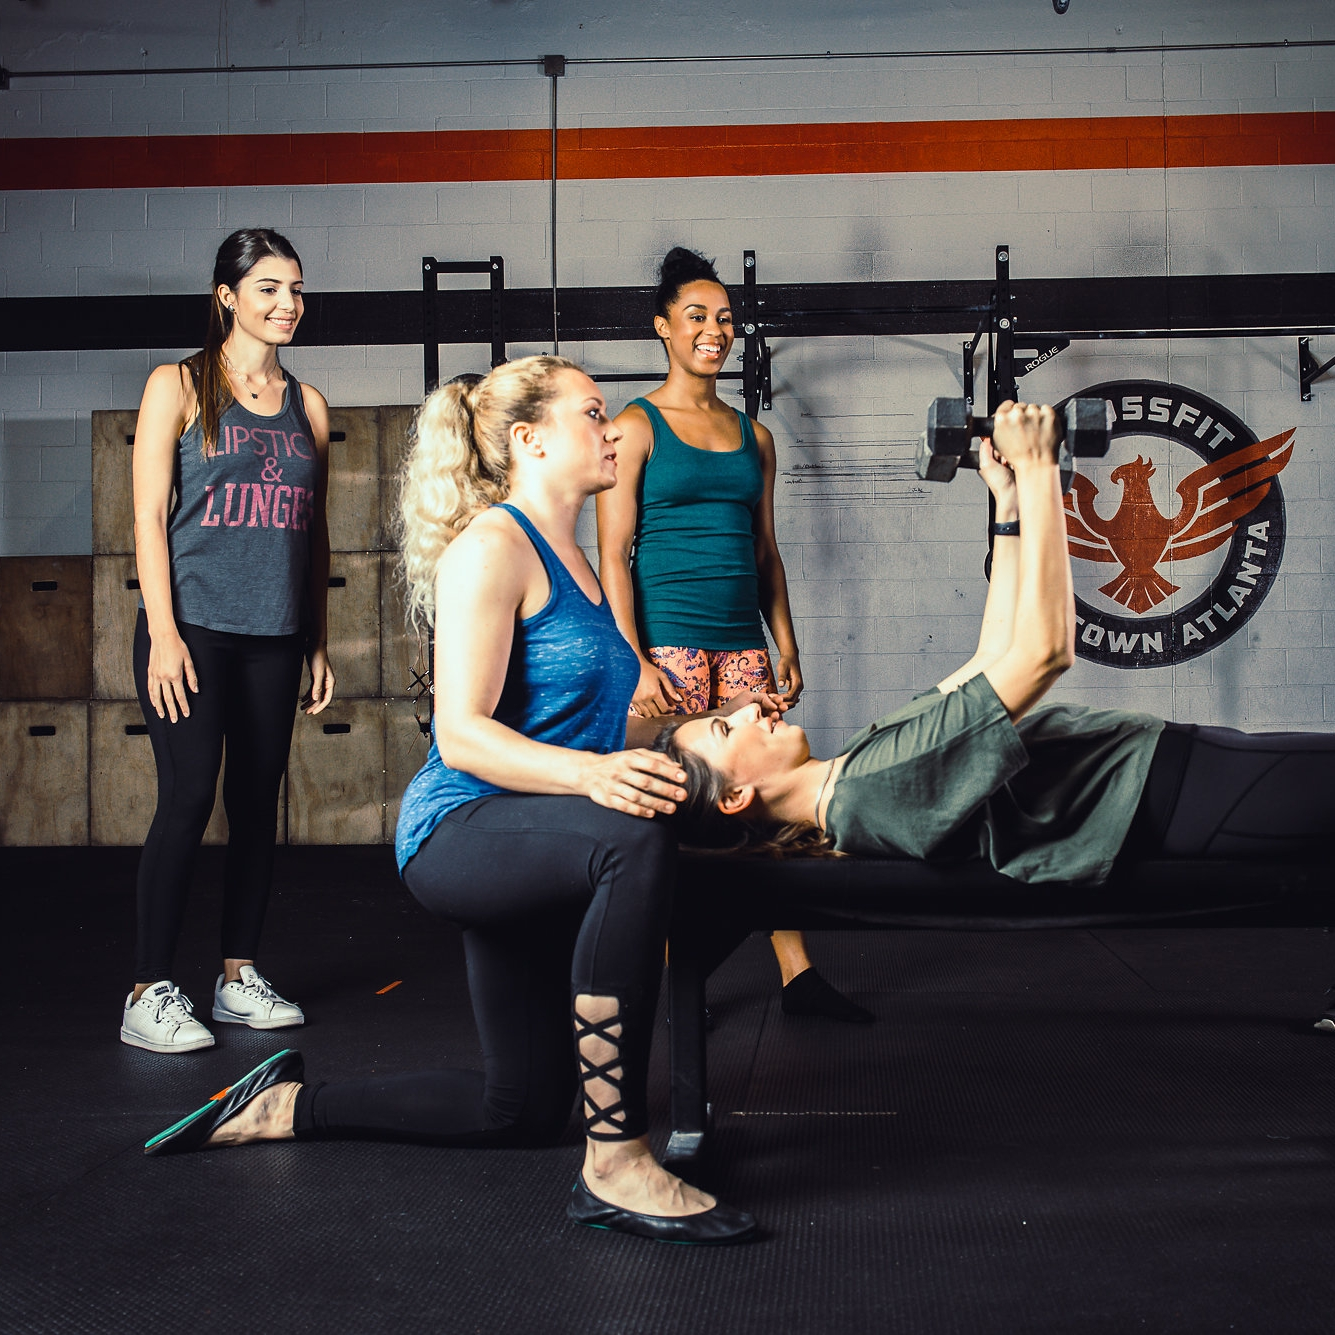 In-Person Coaching & Training - With In-Person Personal Training and Wellness Coaching, you can meet in your home or one of the many great gyms in the Atlanta Metro area that we have relationships with.